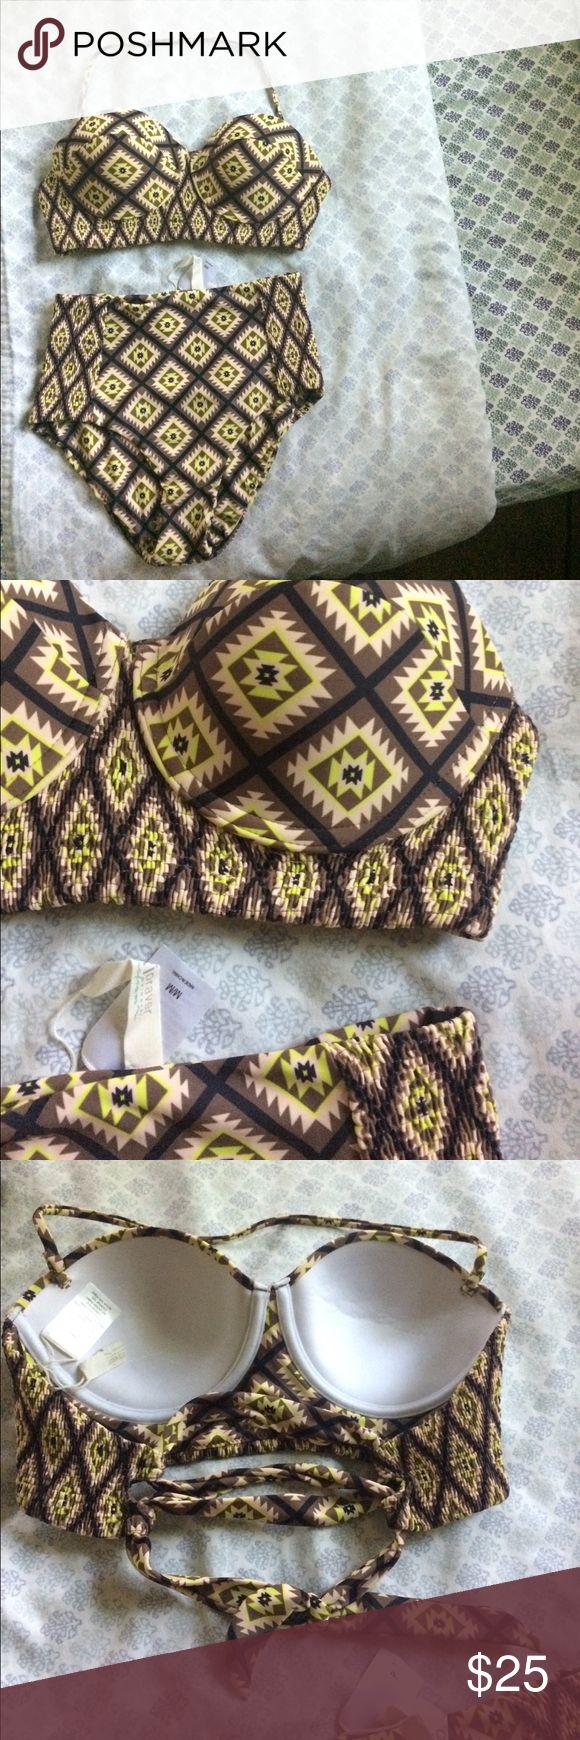 Tori Praver Aztec high waist bikini Barely used, excellent condition. Buttery soft fabric, very comfortable. Smocked sides makes this really flattering and comfortable. Removable halter strap. Tori Praver Swimwear Swim Bikinis